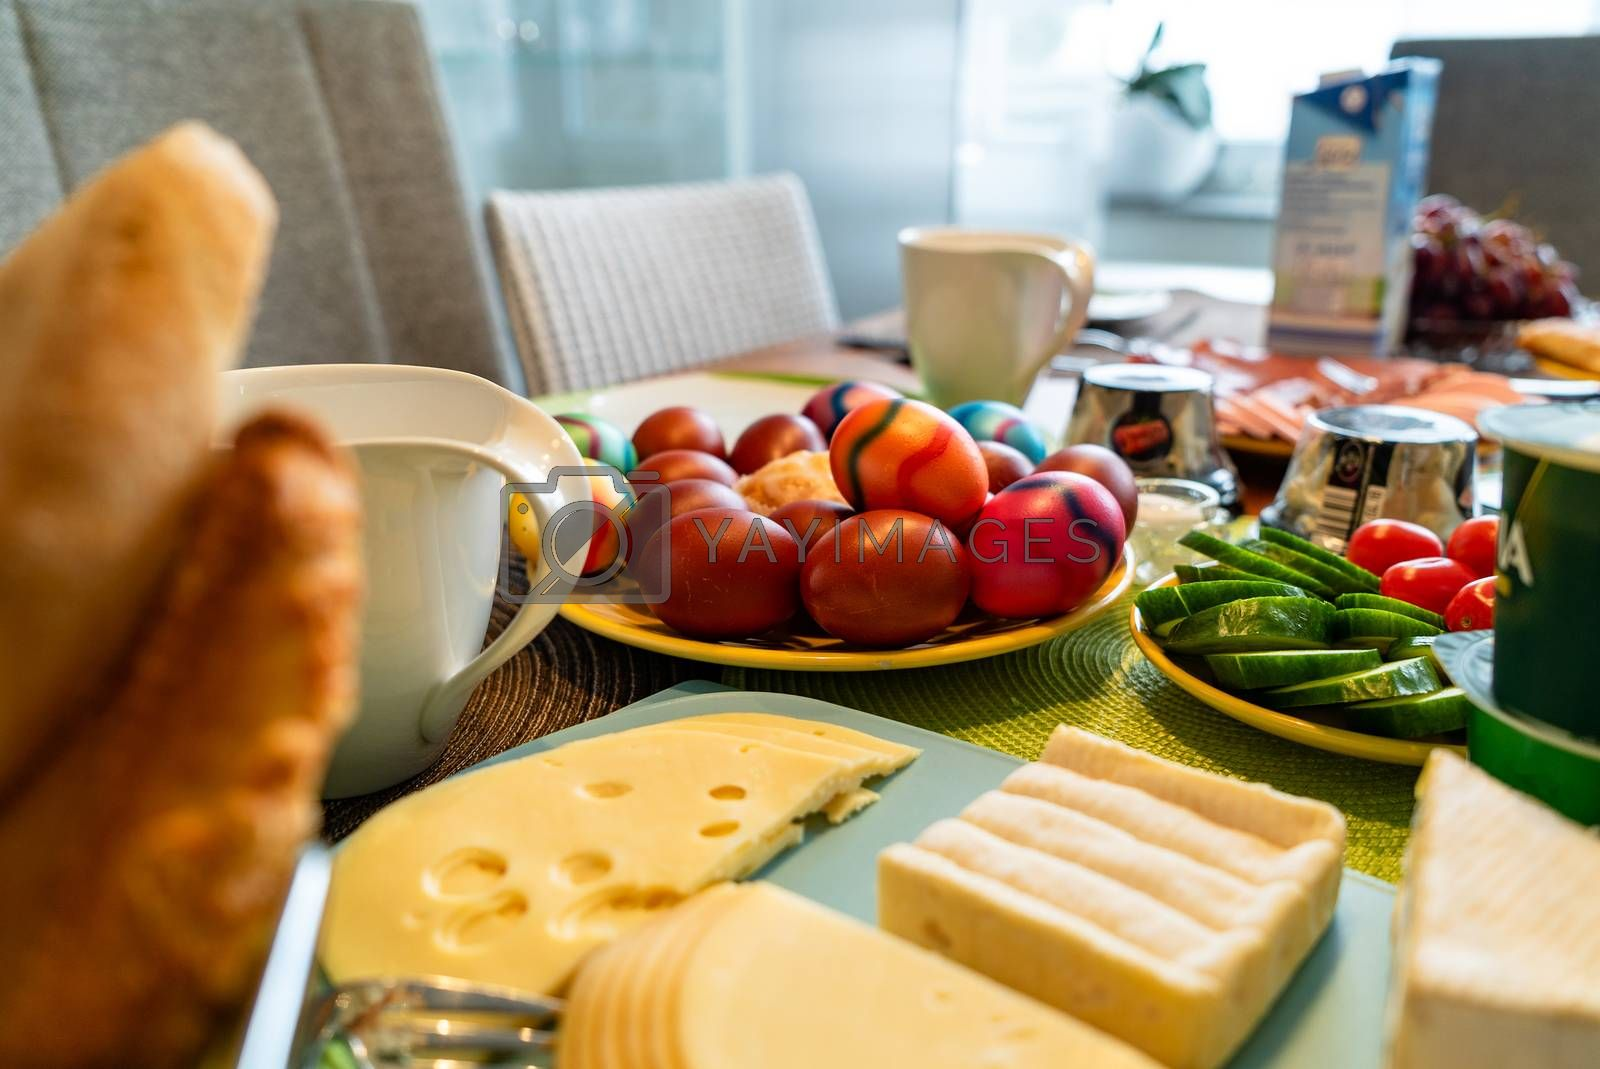 Colored eggs as a traditional symbol of Easter celebration on a breakfast table in Germany together with other toppings.